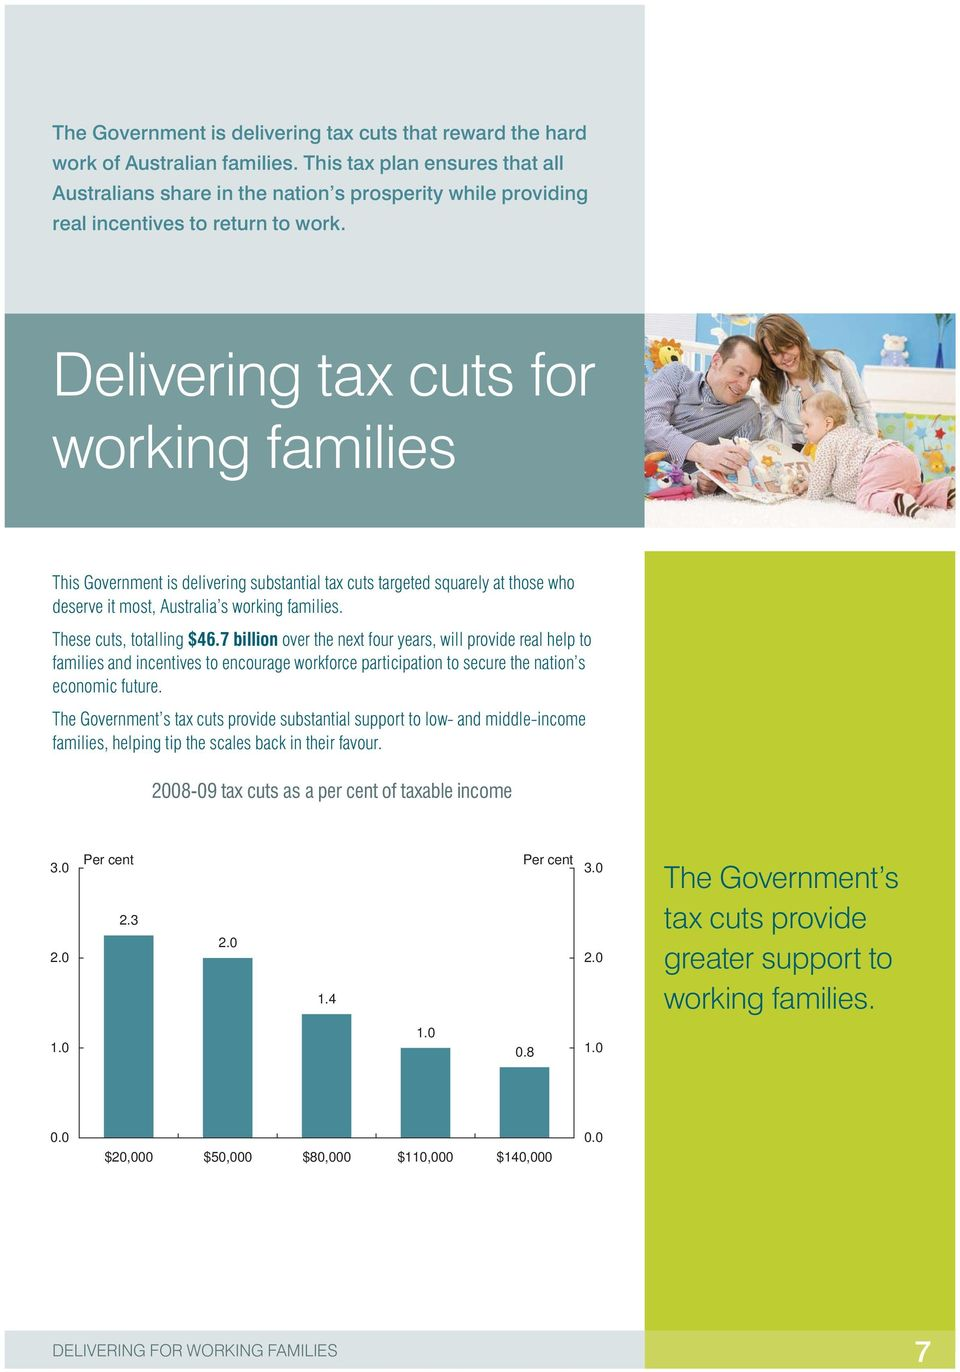 Delivering tax cuts for working families This Government is delivering substantial tax cuts targeted squarely at those who deserve it most, Australia s working families. These cuts, totalling $46.